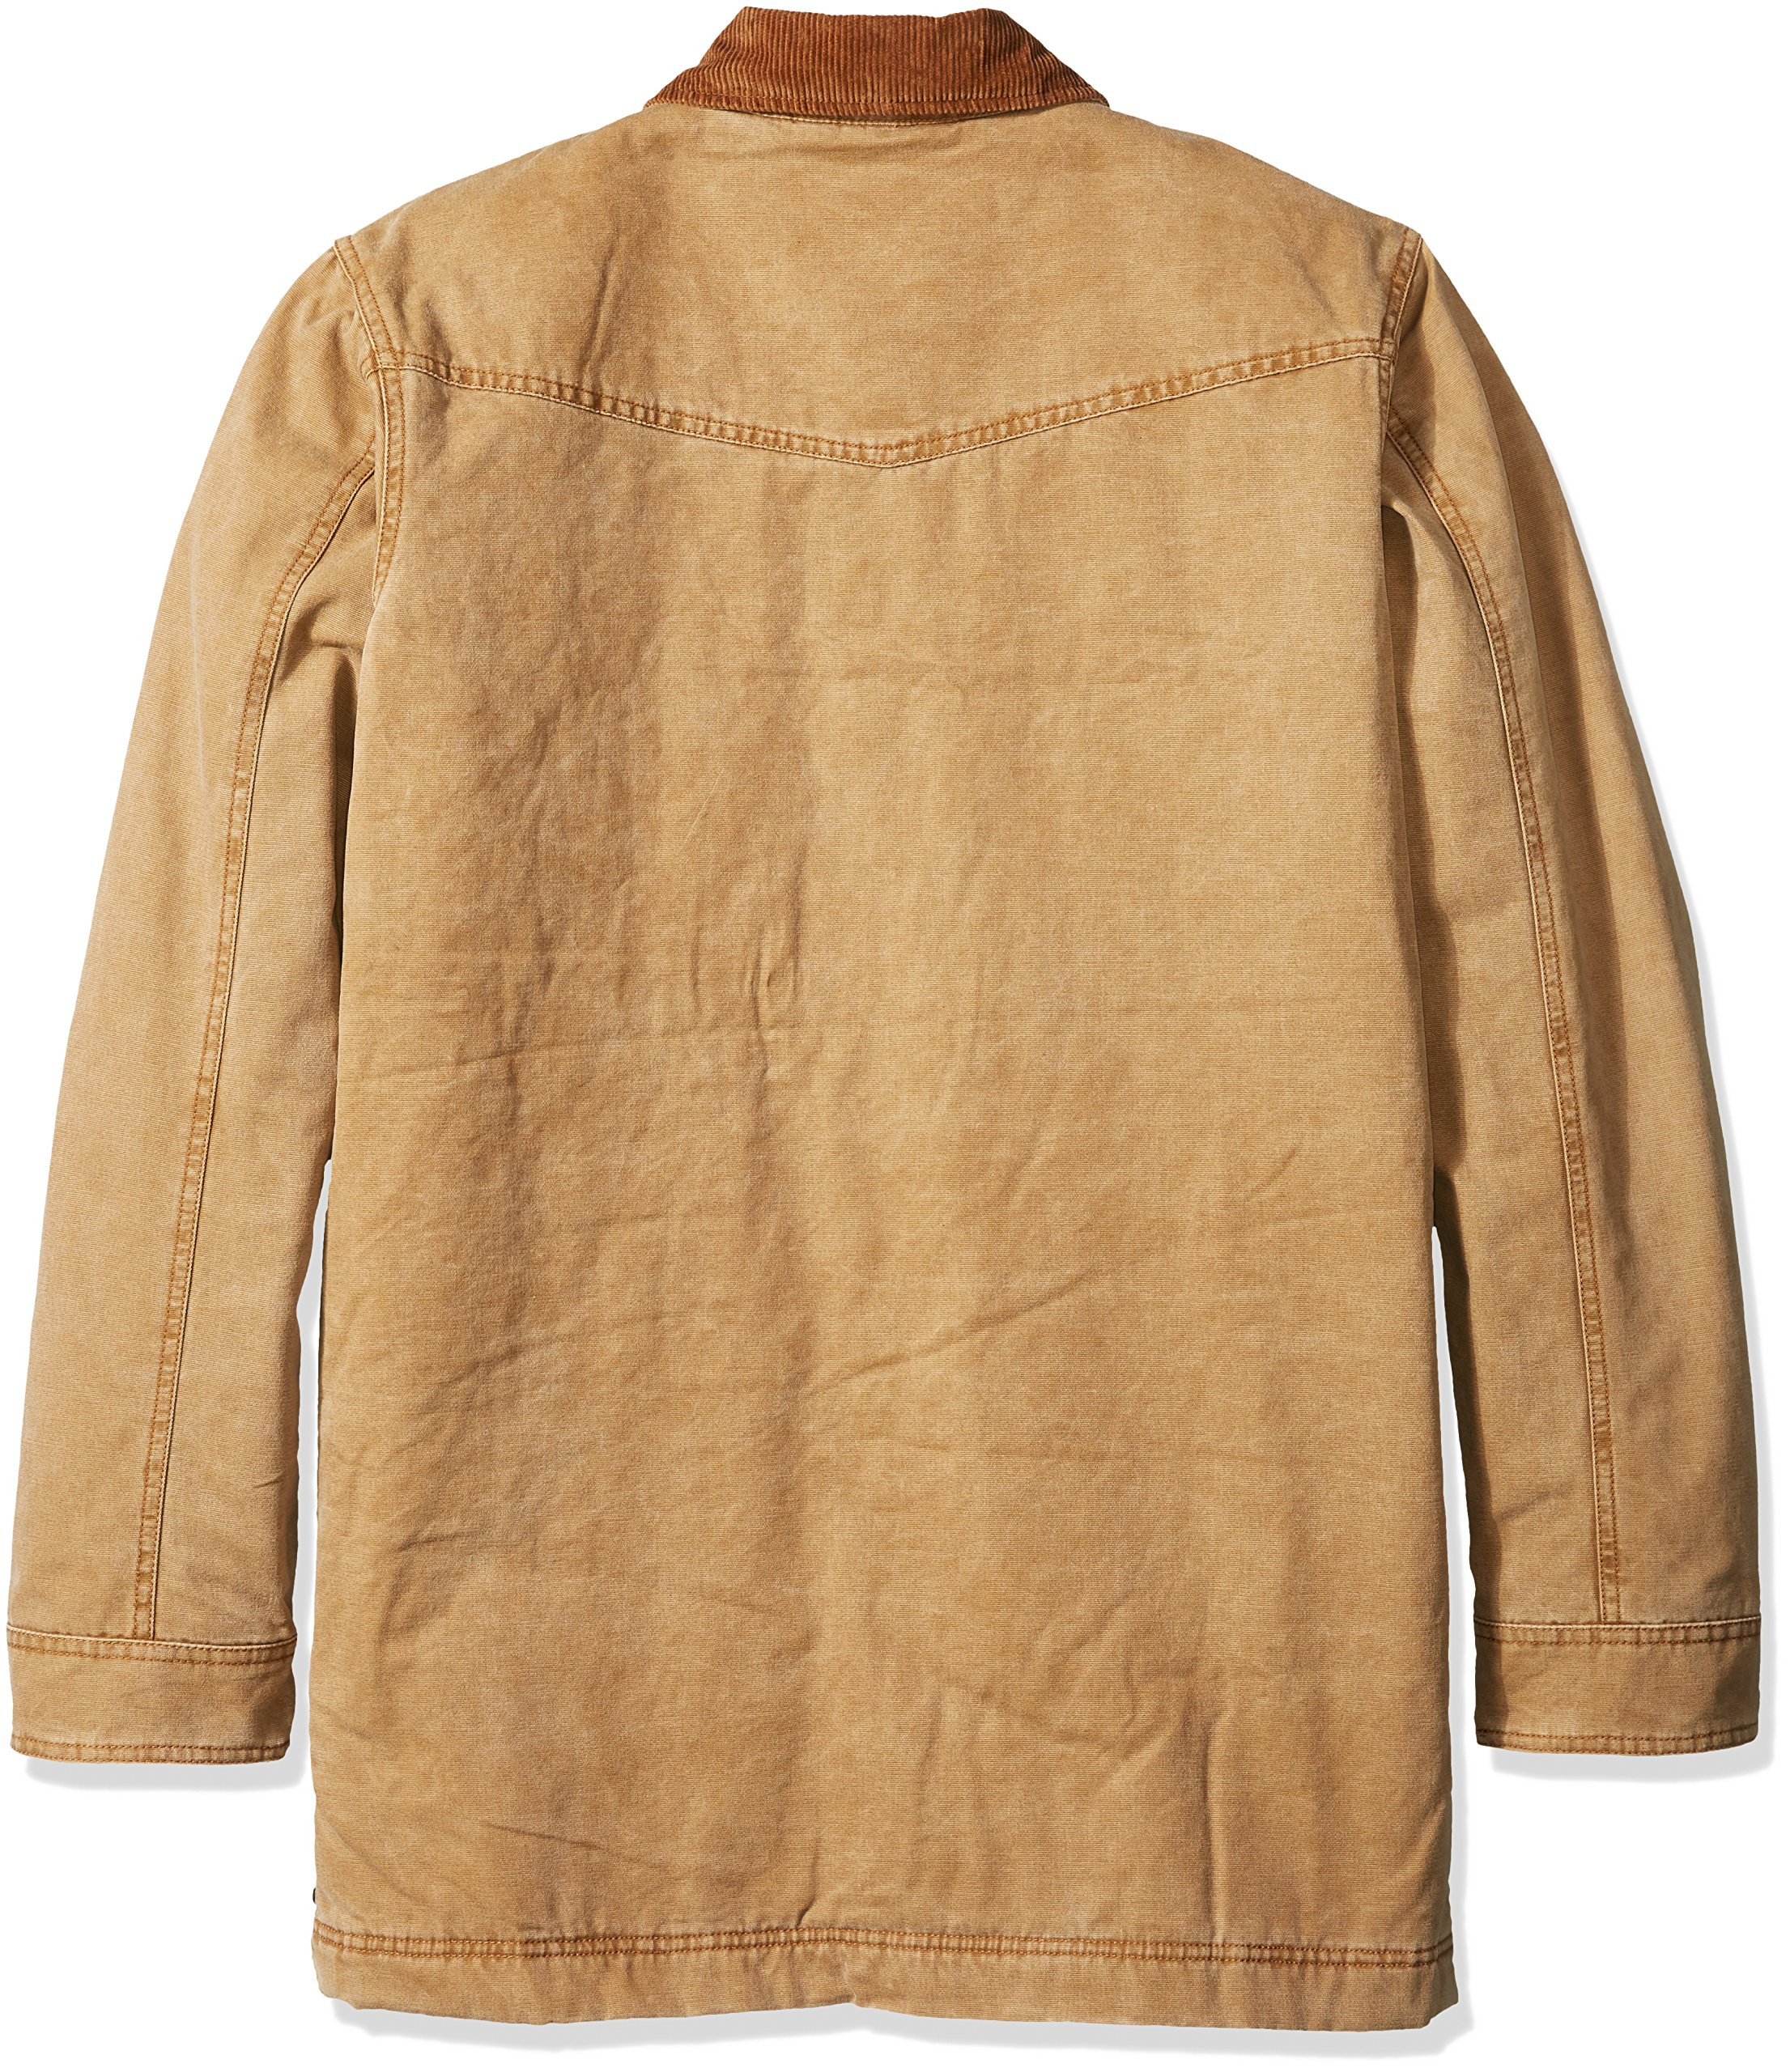 Walls Men's Big Redford Vintage Duck Barn Coat, Washed Pecan, 2X Tall by Walls (Image #2)